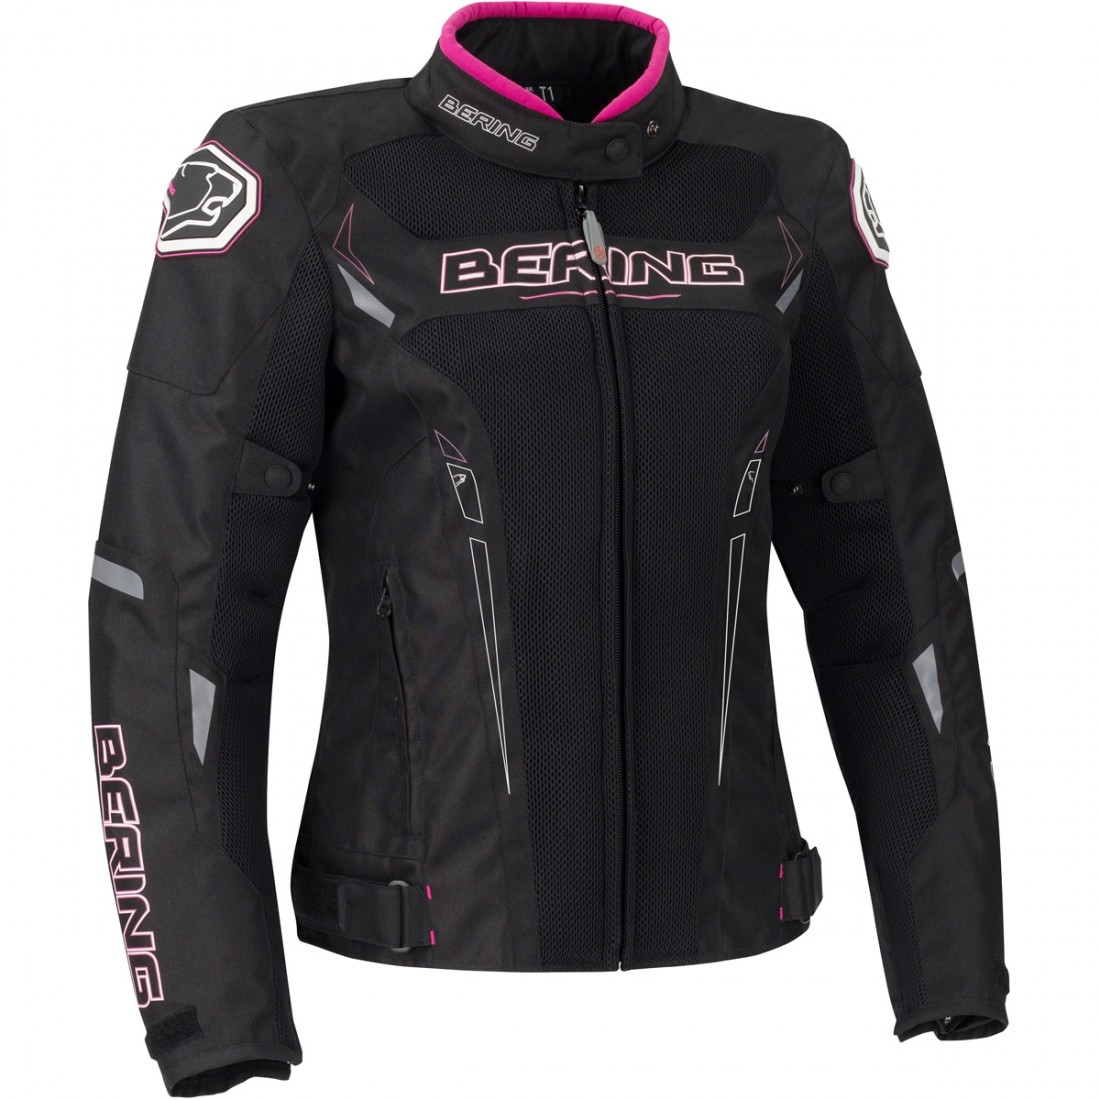 CHAQUETA BERING MISTRAL LADY